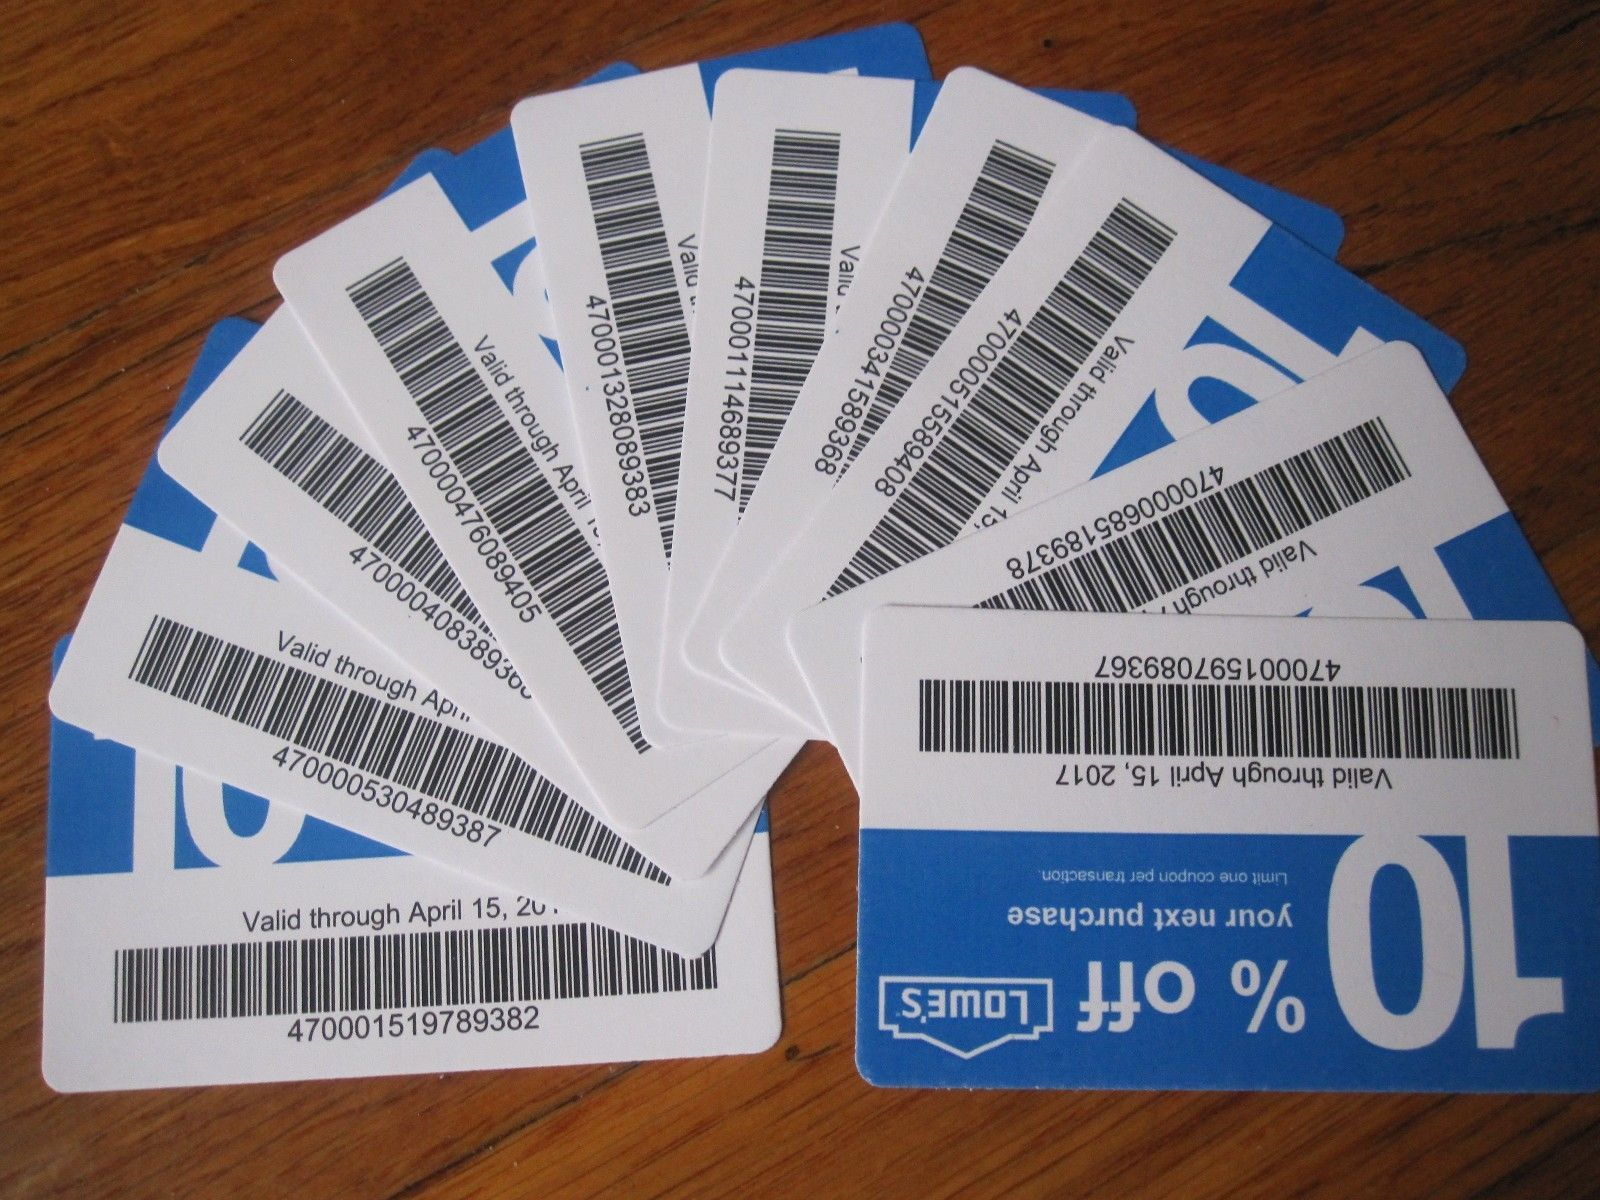 10 LOWES f coupons MAY 15th Use at HOME DEPOT